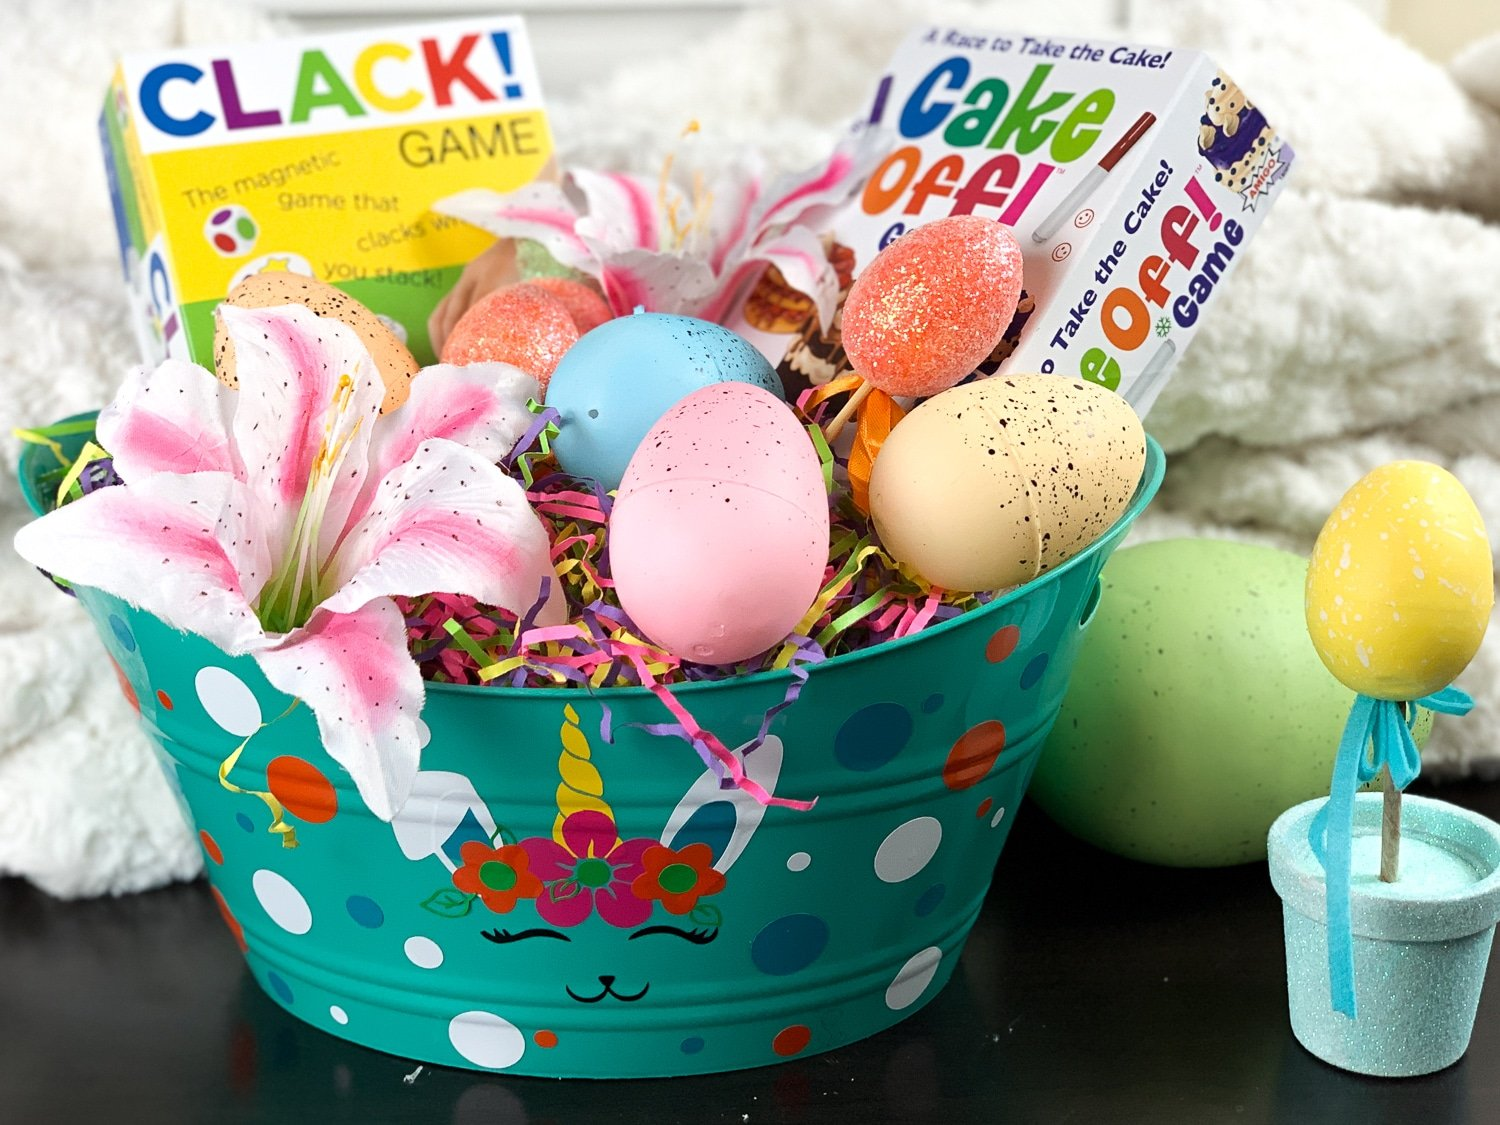 If you are looking for Easter basket ideas using your Cricut you are in the right place. This DIY Easter basket cost less than $5 to make. #unicorn #bunnicorn #freesvgfile #easter #diyeasterbasket